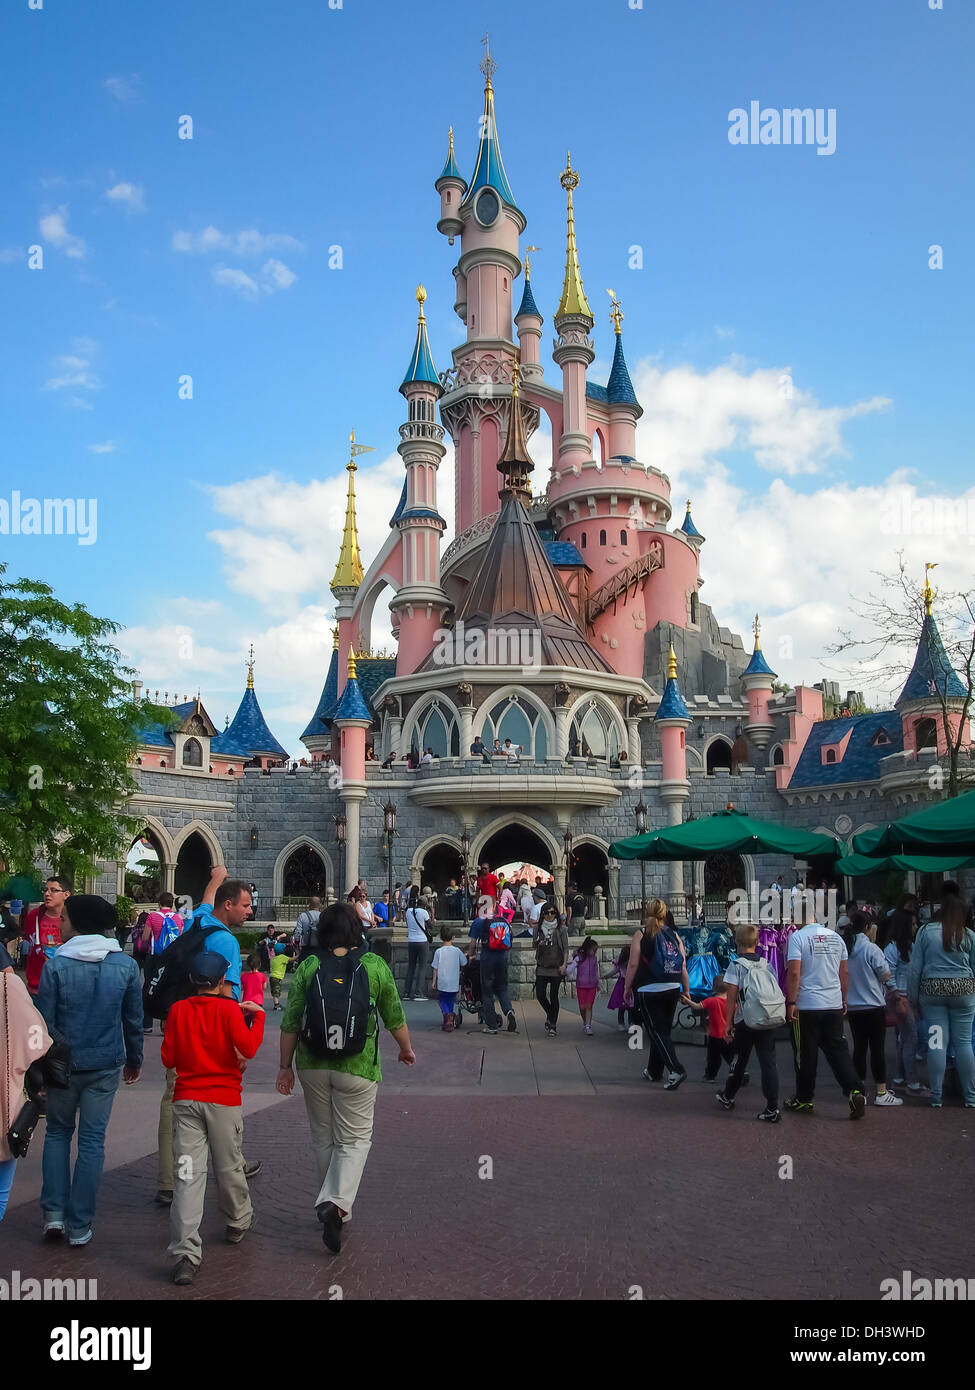 Tourists walk towards Sleeping Beauty's castle at Disneyland Paris, France - Stock Image